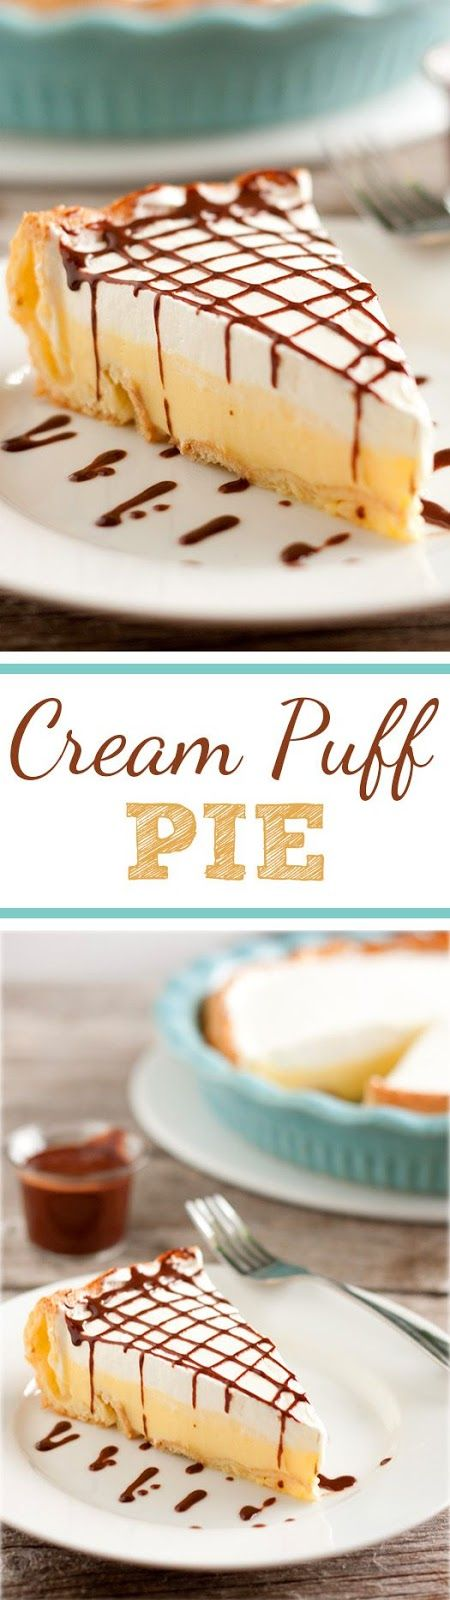 Cream Puff Pie (aka cream puff cake or eclair cake) | Food And Cake Recipes